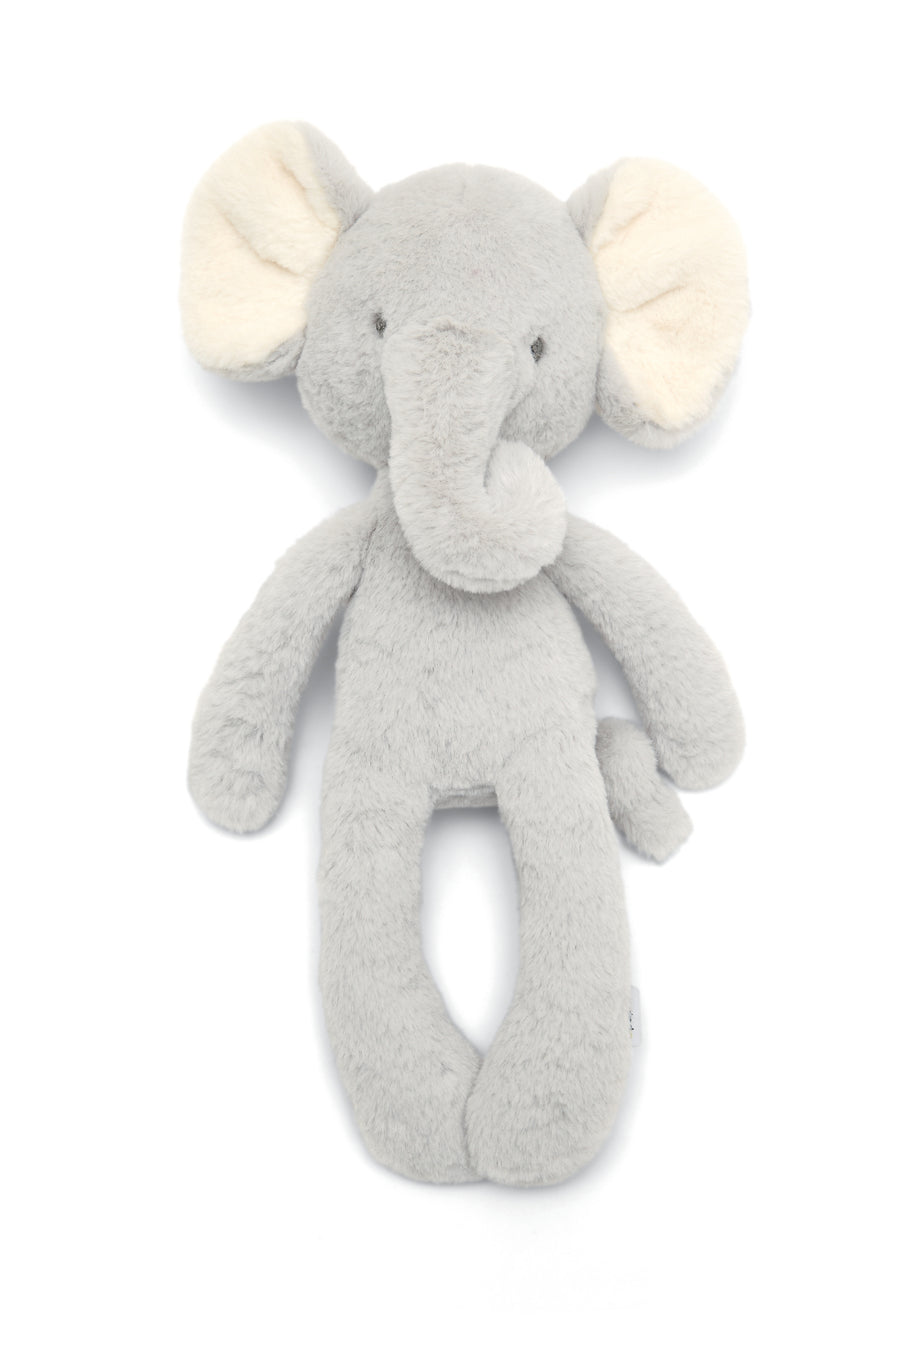 MP Soft Toy My First Elephant | Mamas & Papas  | Baby Little Planet Store Hoppers Crossing